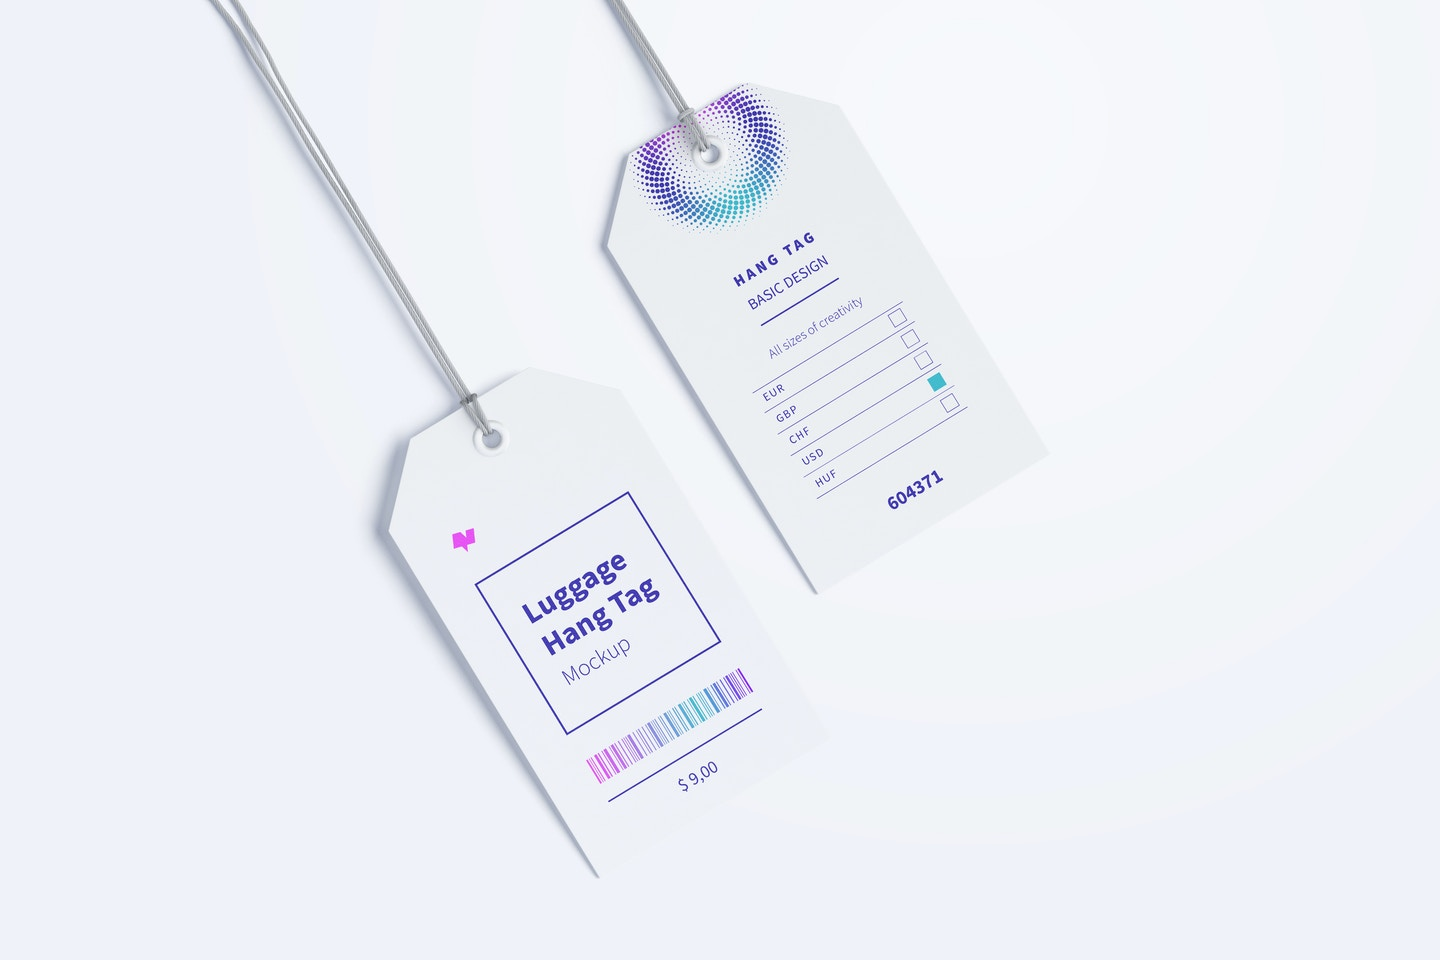 Luggage Hang Tags Mockup with String, Two-sided 02